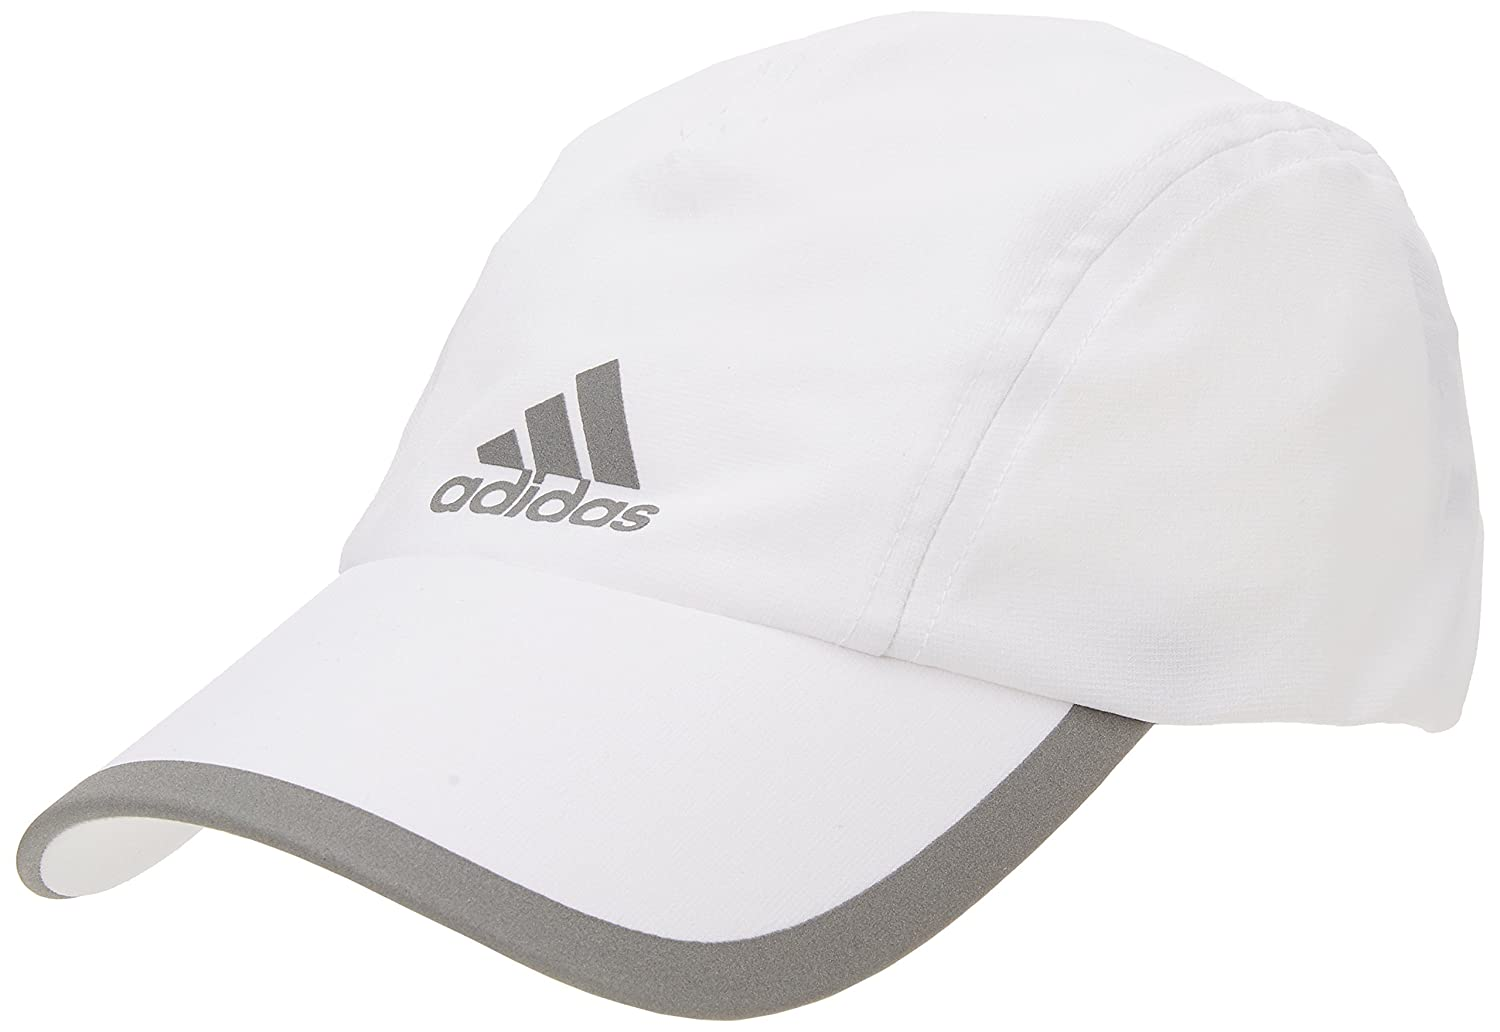 Adidas Women s Climalite Running Cap - White White Reflective Silver ... 99a947729160